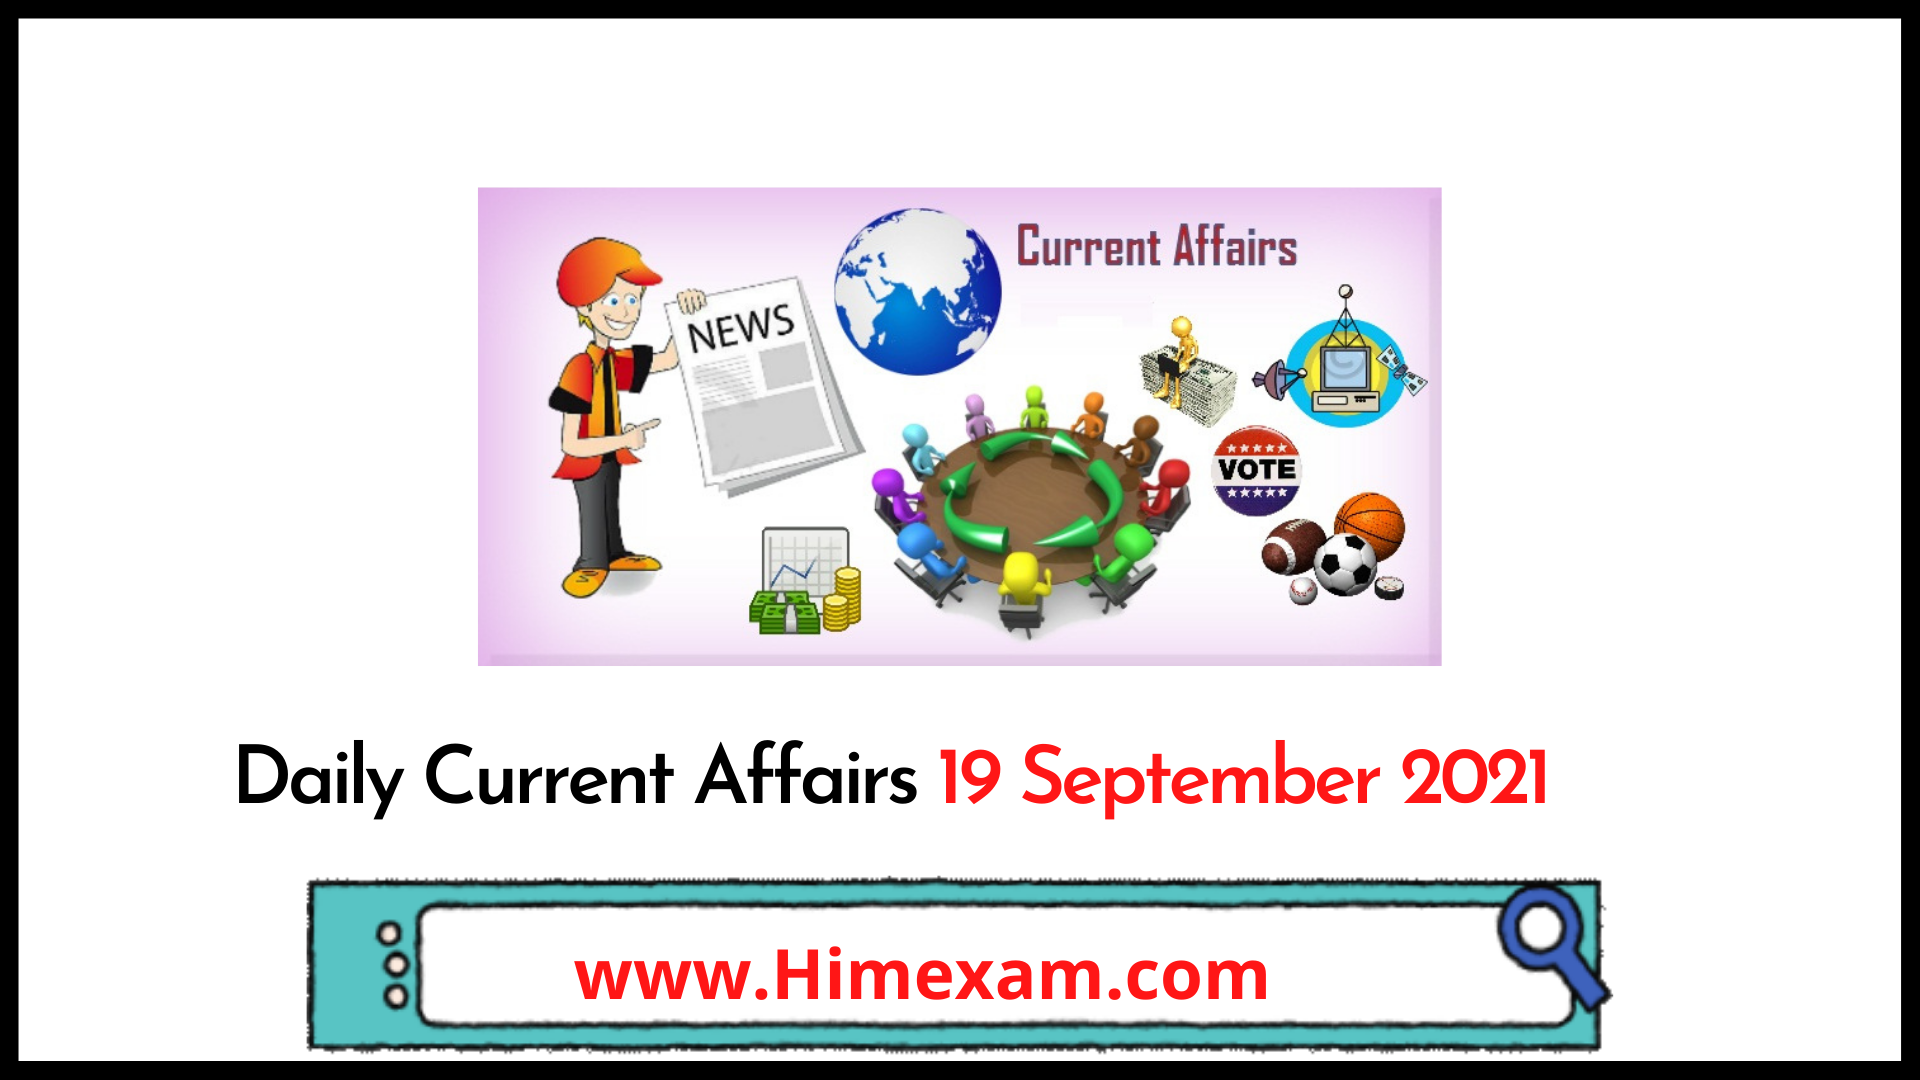 Daily Current Affairs 19 September 2021